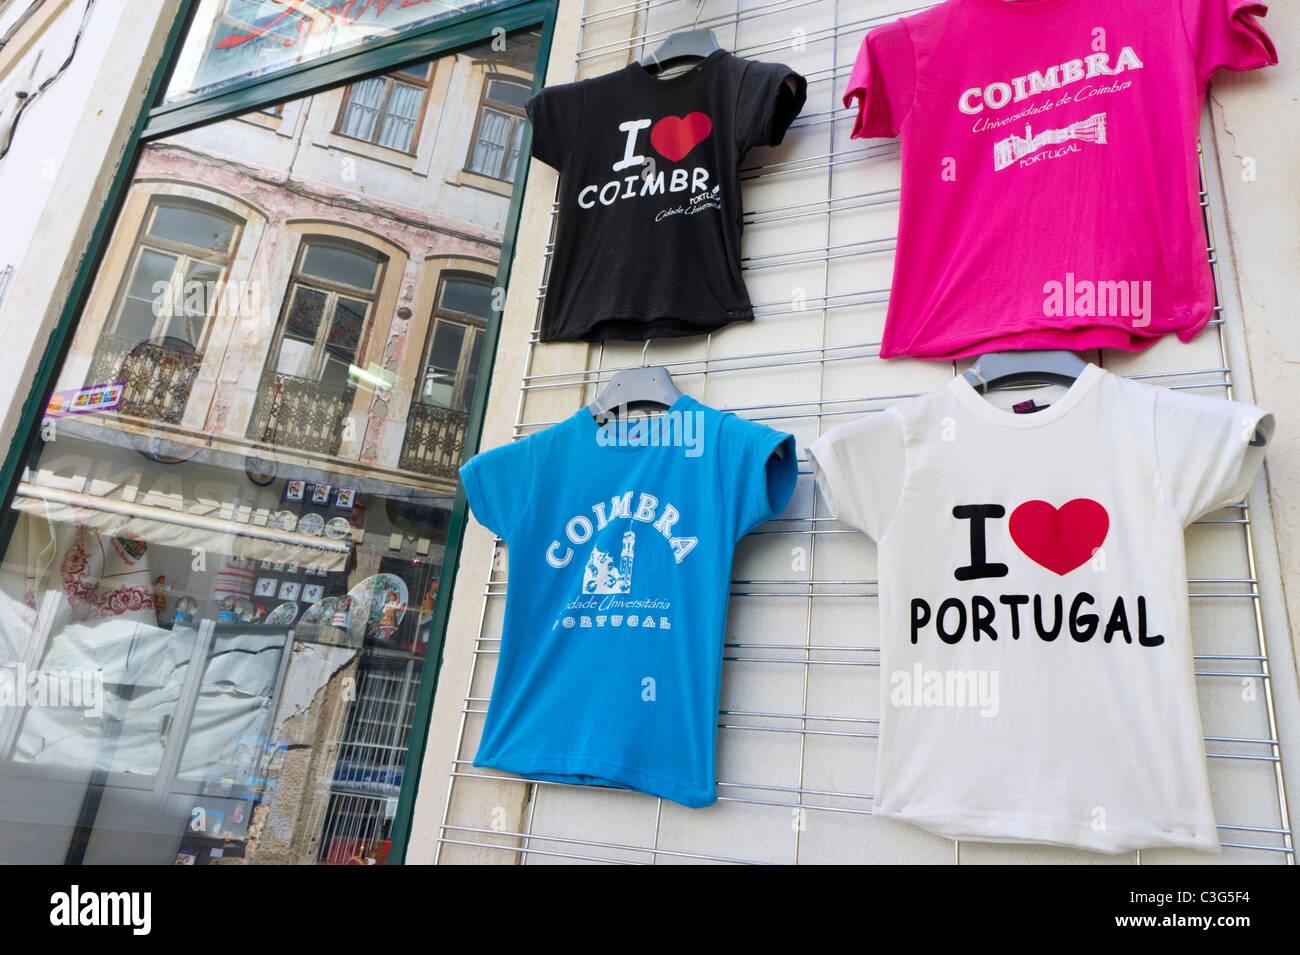 15765ea28 Souvenir t-shirts for sale in a gift shop in Coimbra, Portugal - Stock